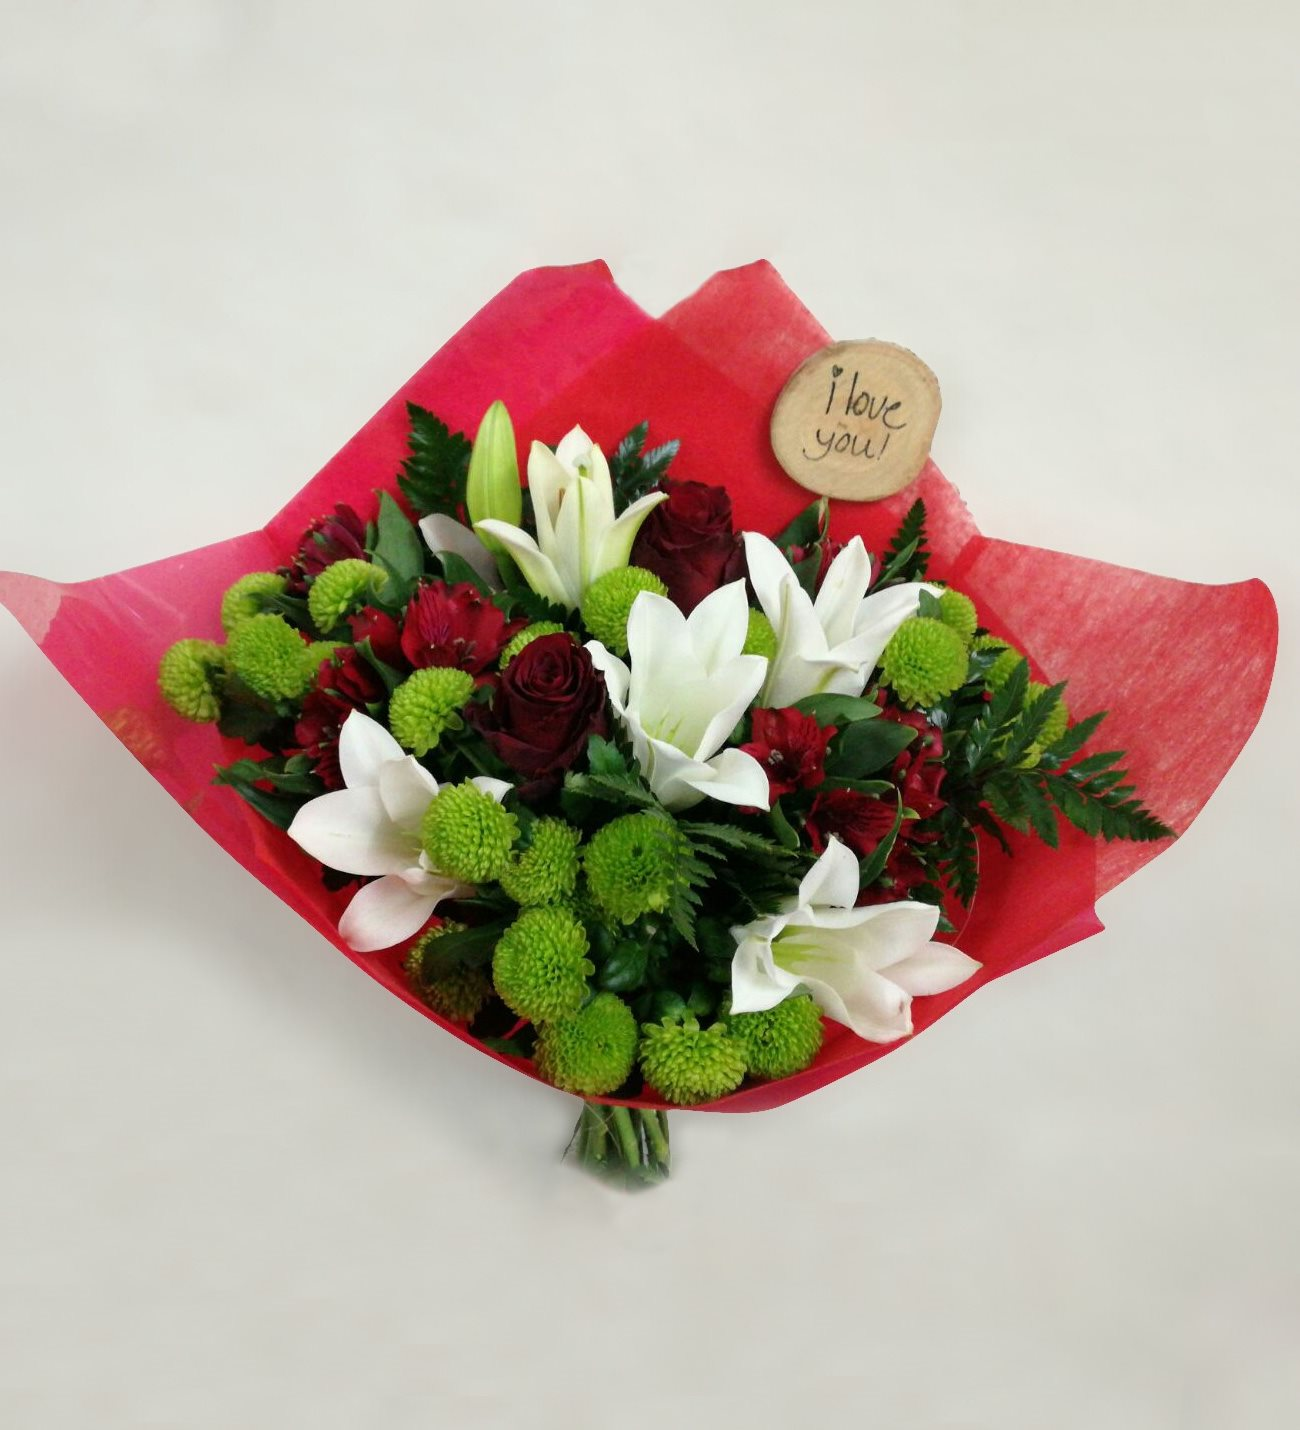 Dotorea Red Roses White Lilies And Green Cuts